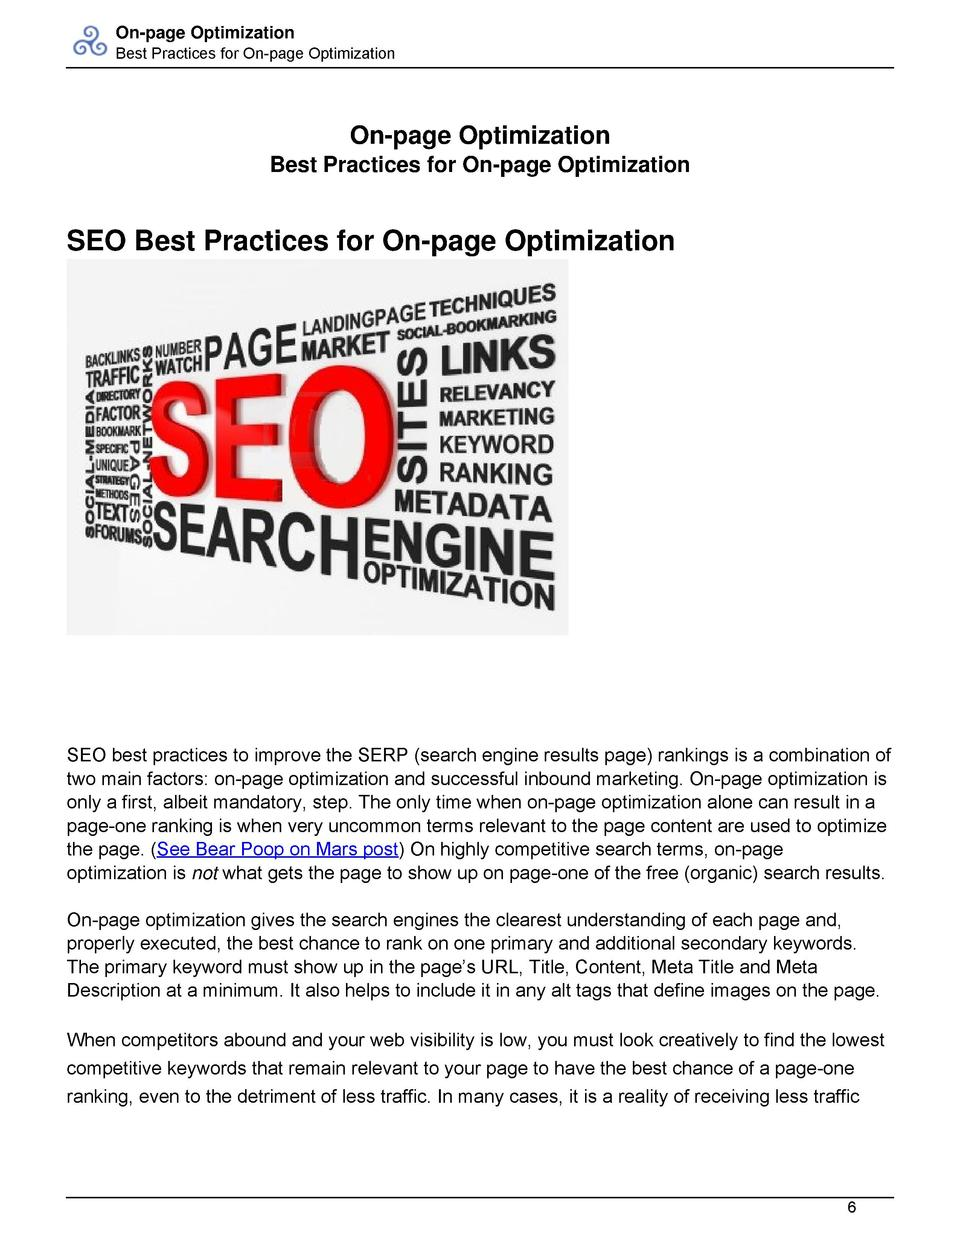 On-page Optimization Best Practices for On-page Optimization  On-page Optimization Best Practices for On-page Optimization...